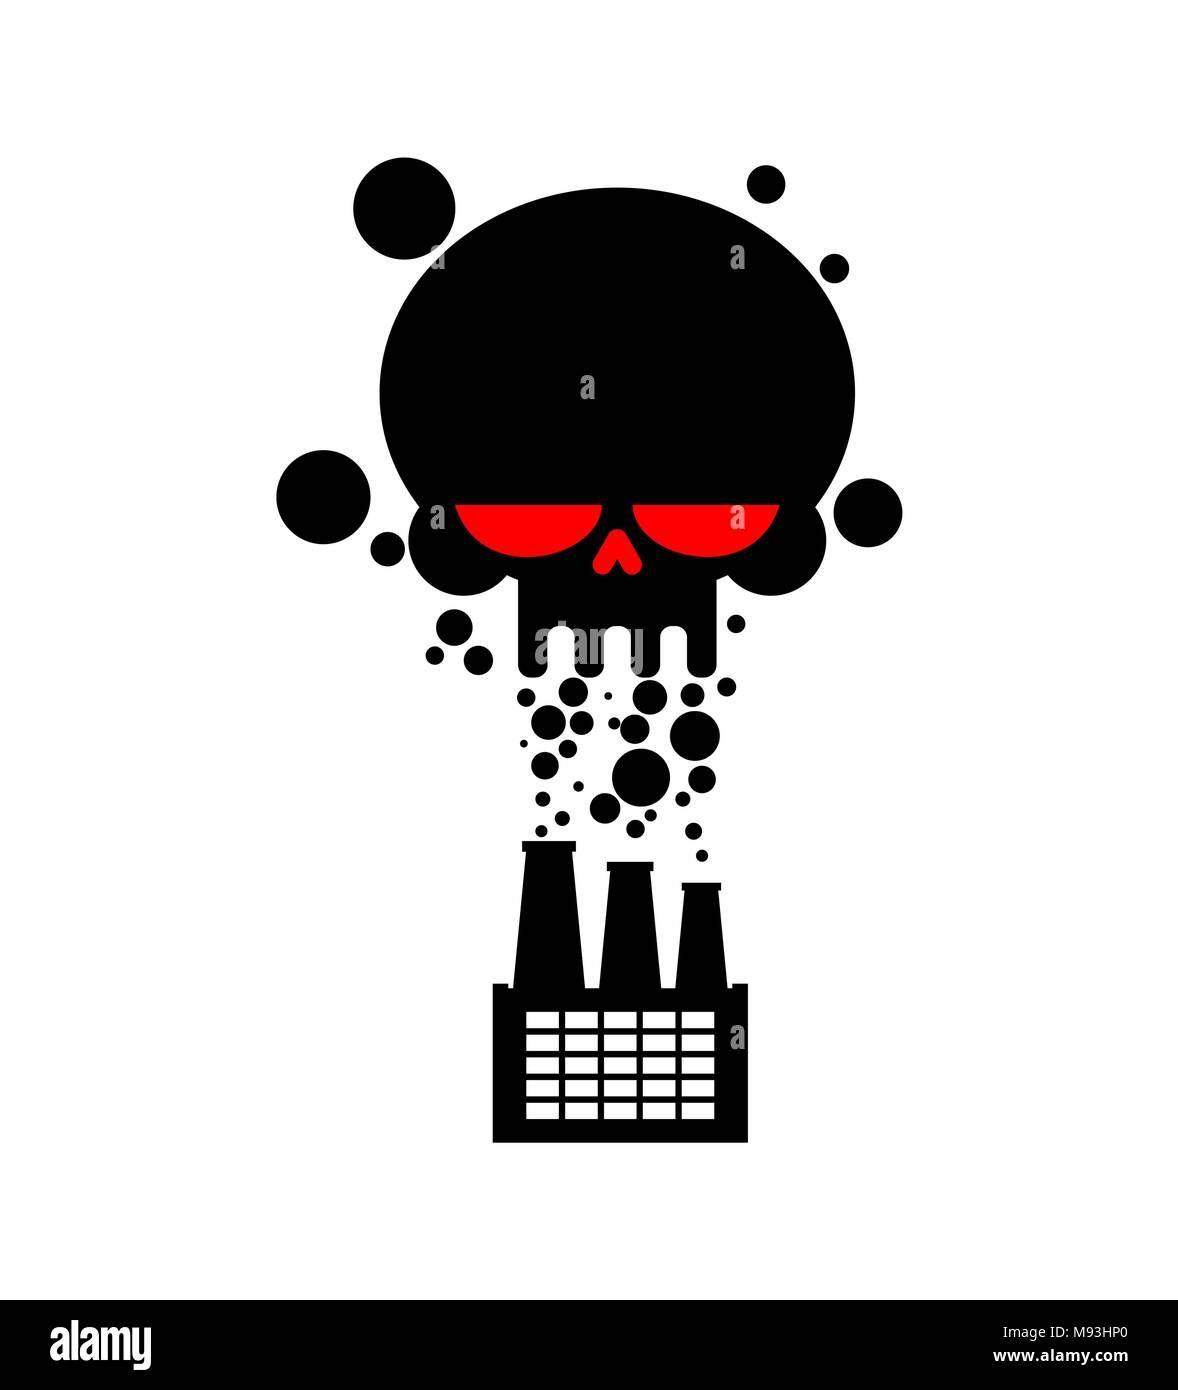 Black Smoke skull plant. works is poisoning air. Environmental pollution. Factory and poisonous gas. death of all living thing. Ecological catastrophy - Stock Image